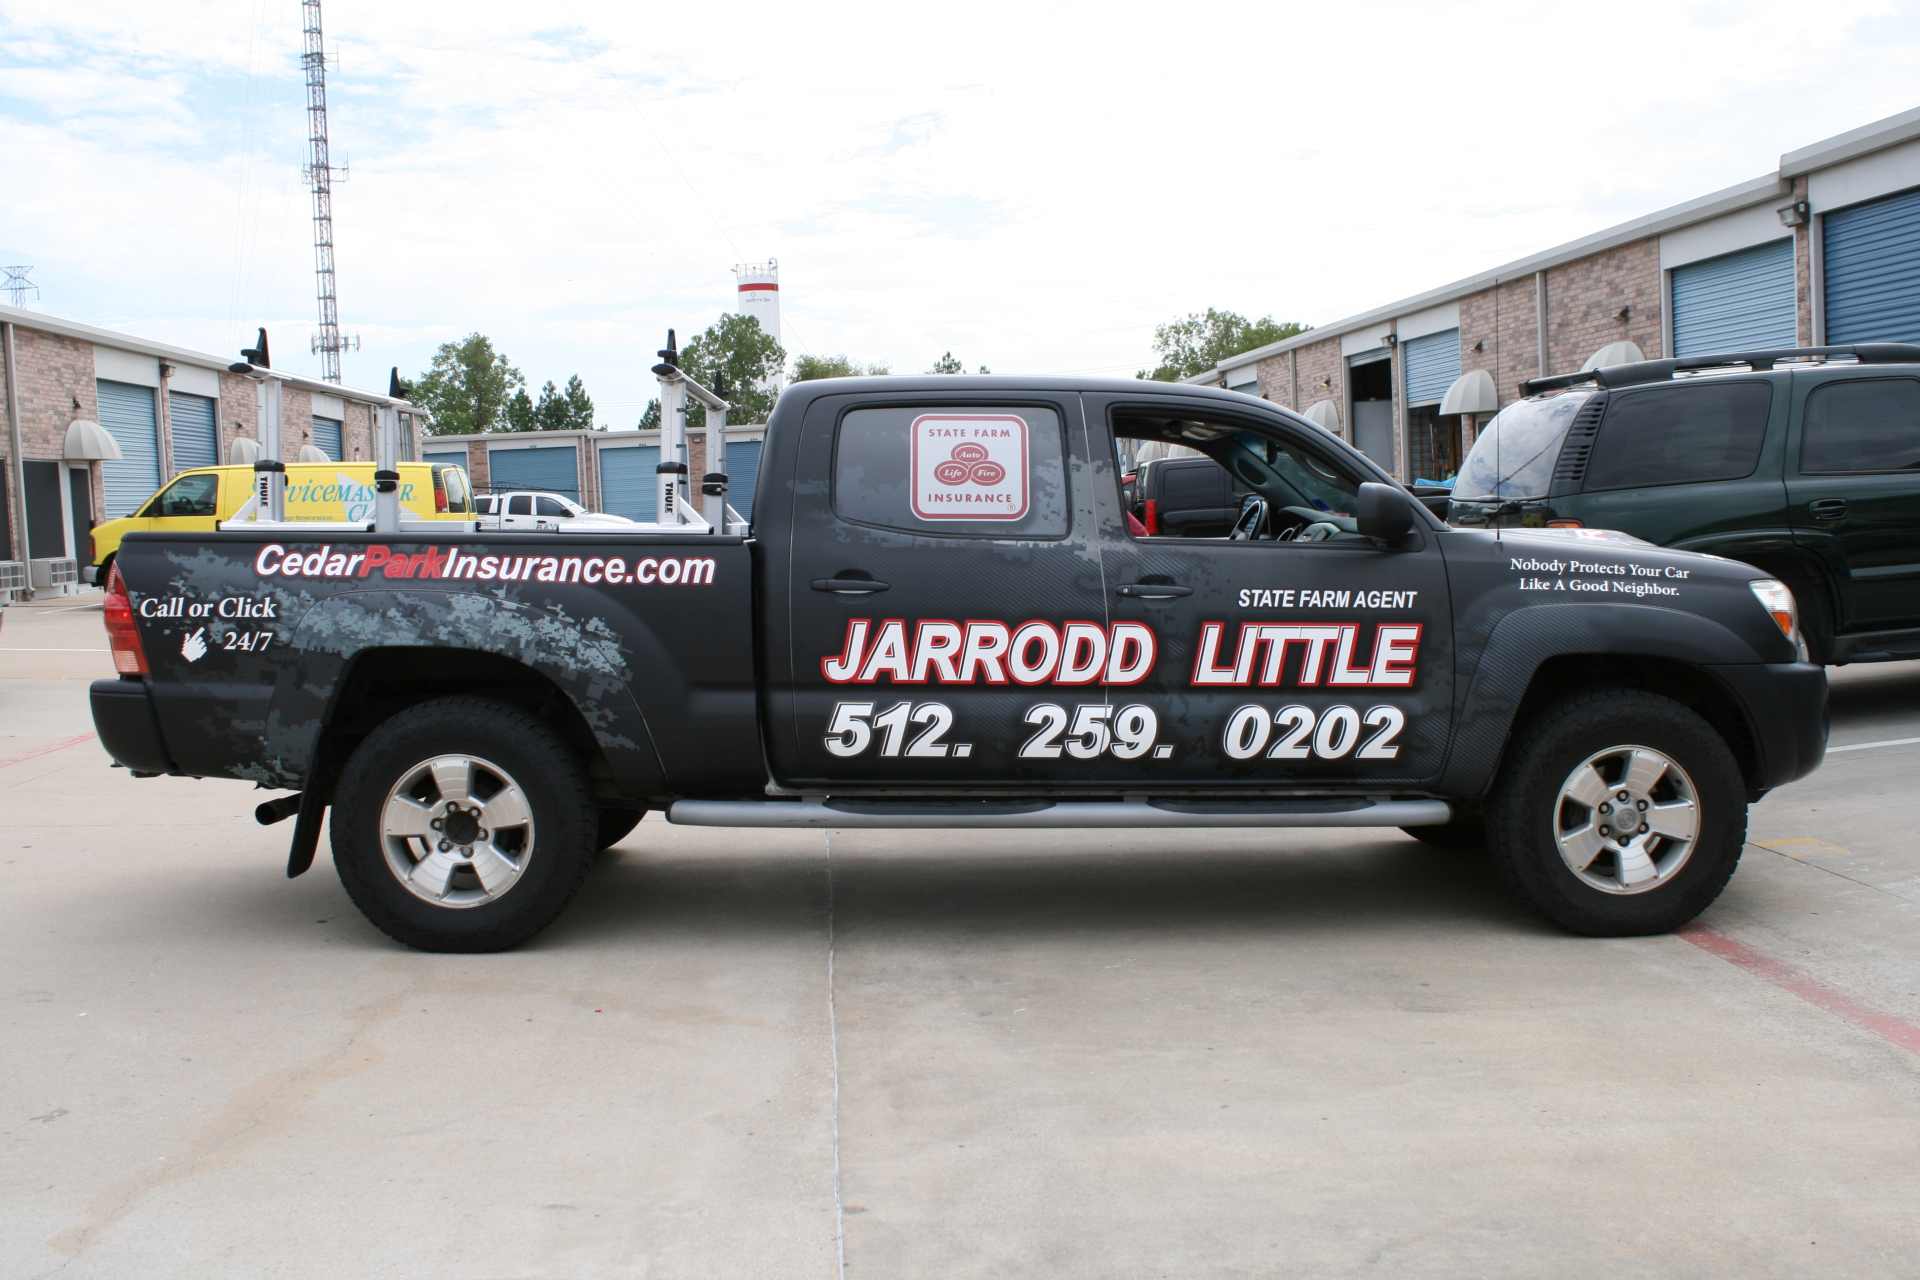 State Farm Agent Jarrodd Little, State Farm Vehicle Wraps, vehicle wraps dallas tx